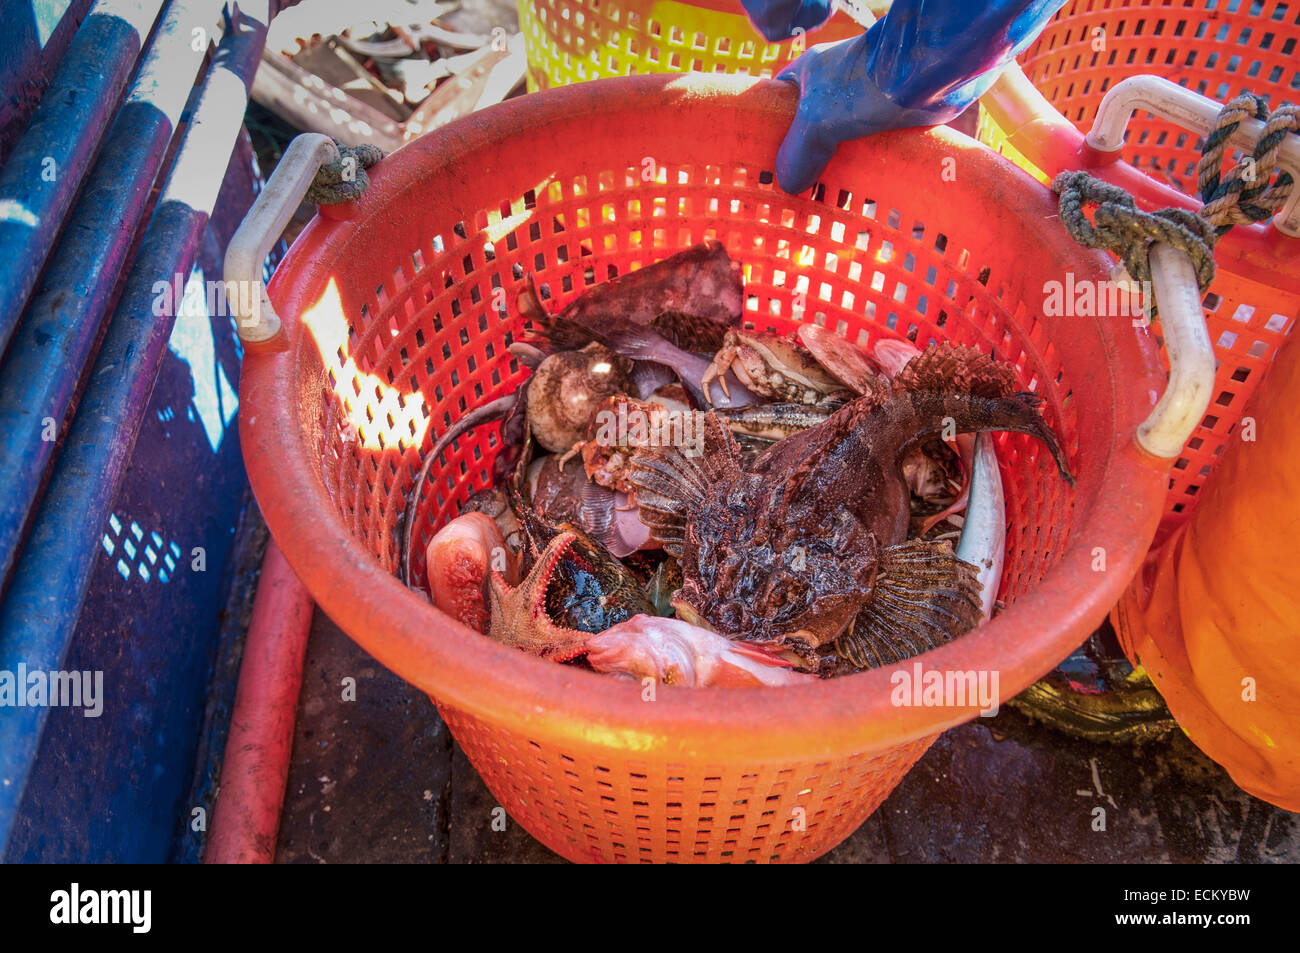 Bycatch of Longhorn Sculpin (Myoxocephalus octodecemspinosus), Starfish (Asterias rubens), and Crab (Cancer irroratus) Stock Photo